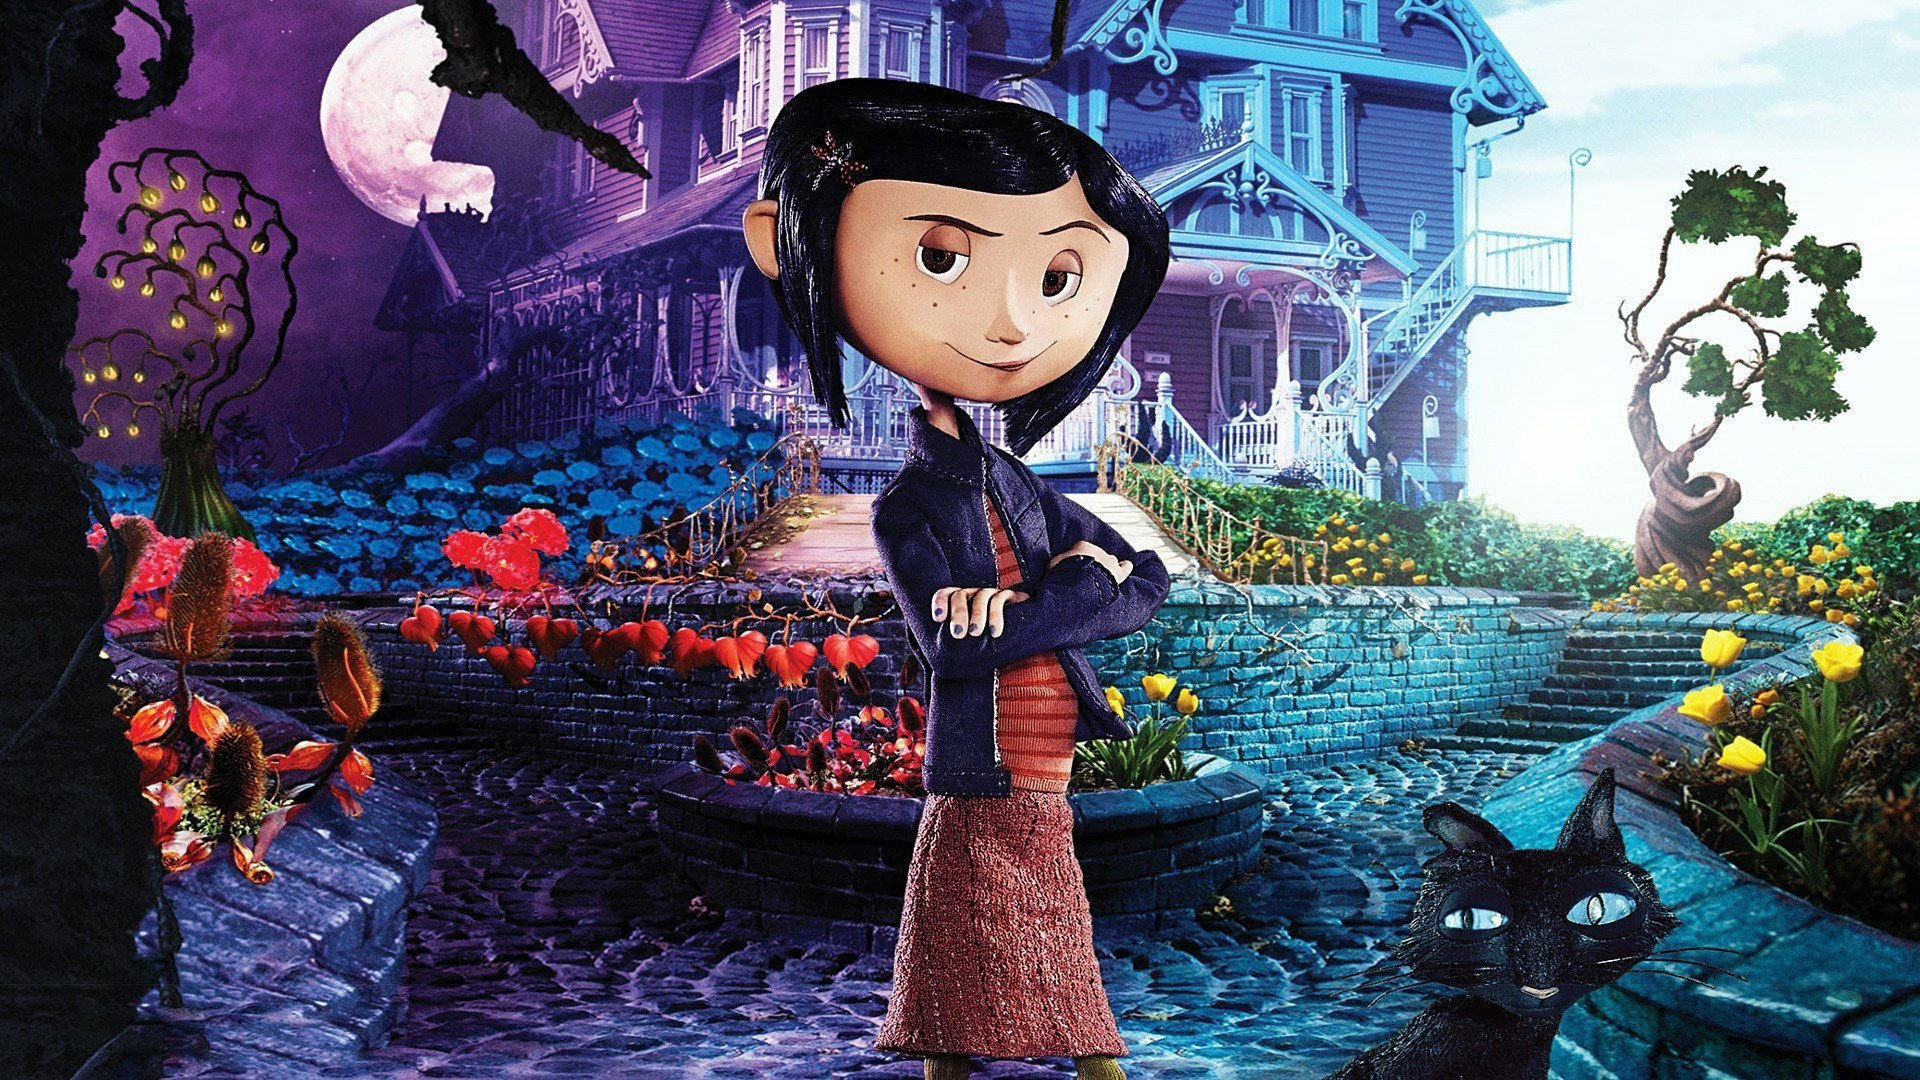 13 Coraline Hd Wallpapers Background Images Wallpaper Abyss